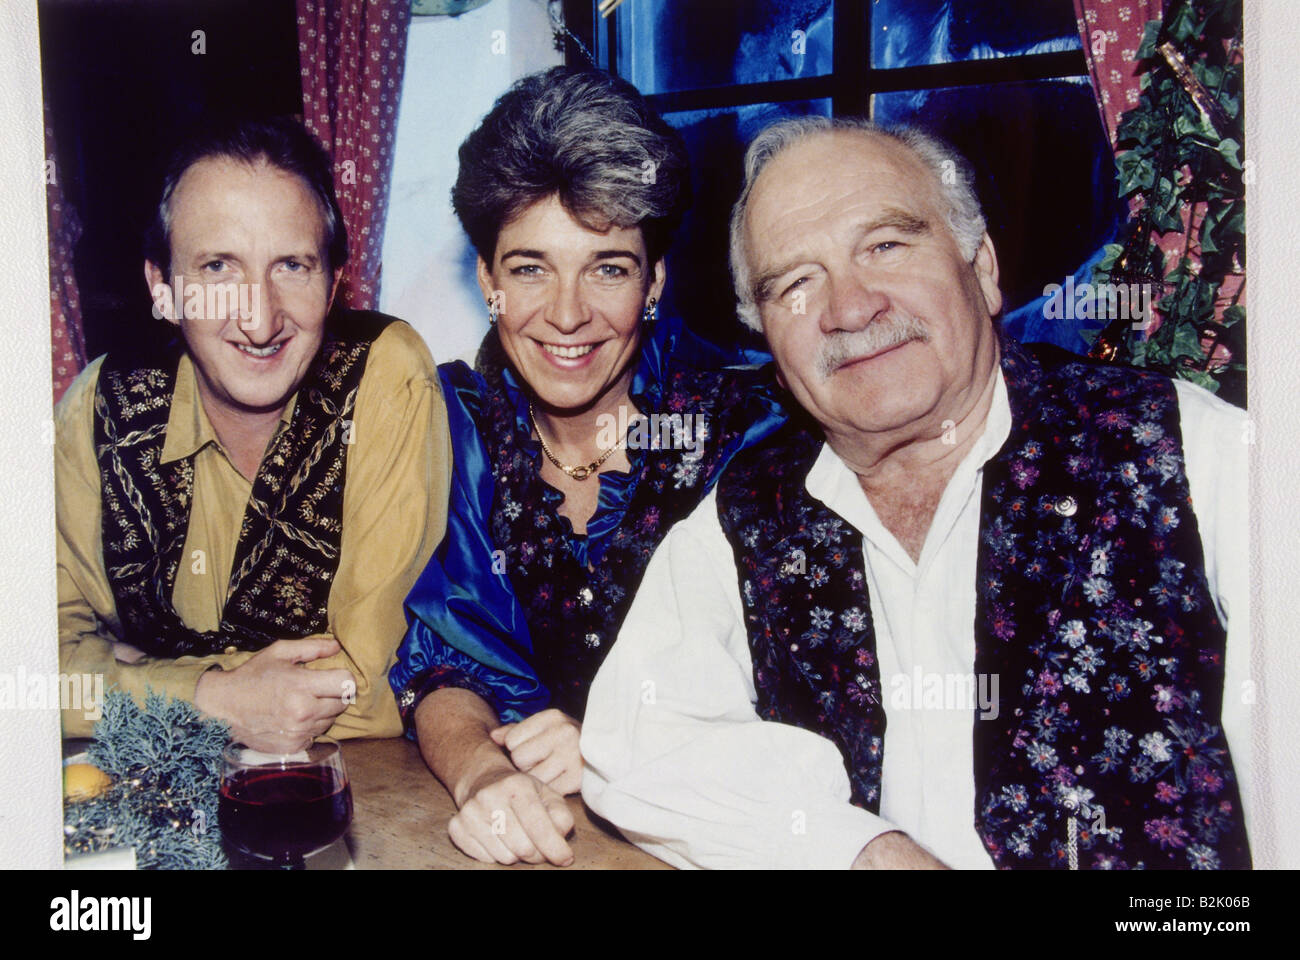 Steiner, Peter, 6.9.1927 - 22.12.2008, German actor, half length, with Mike Krüger and daughter Gerda, during - Stock Image